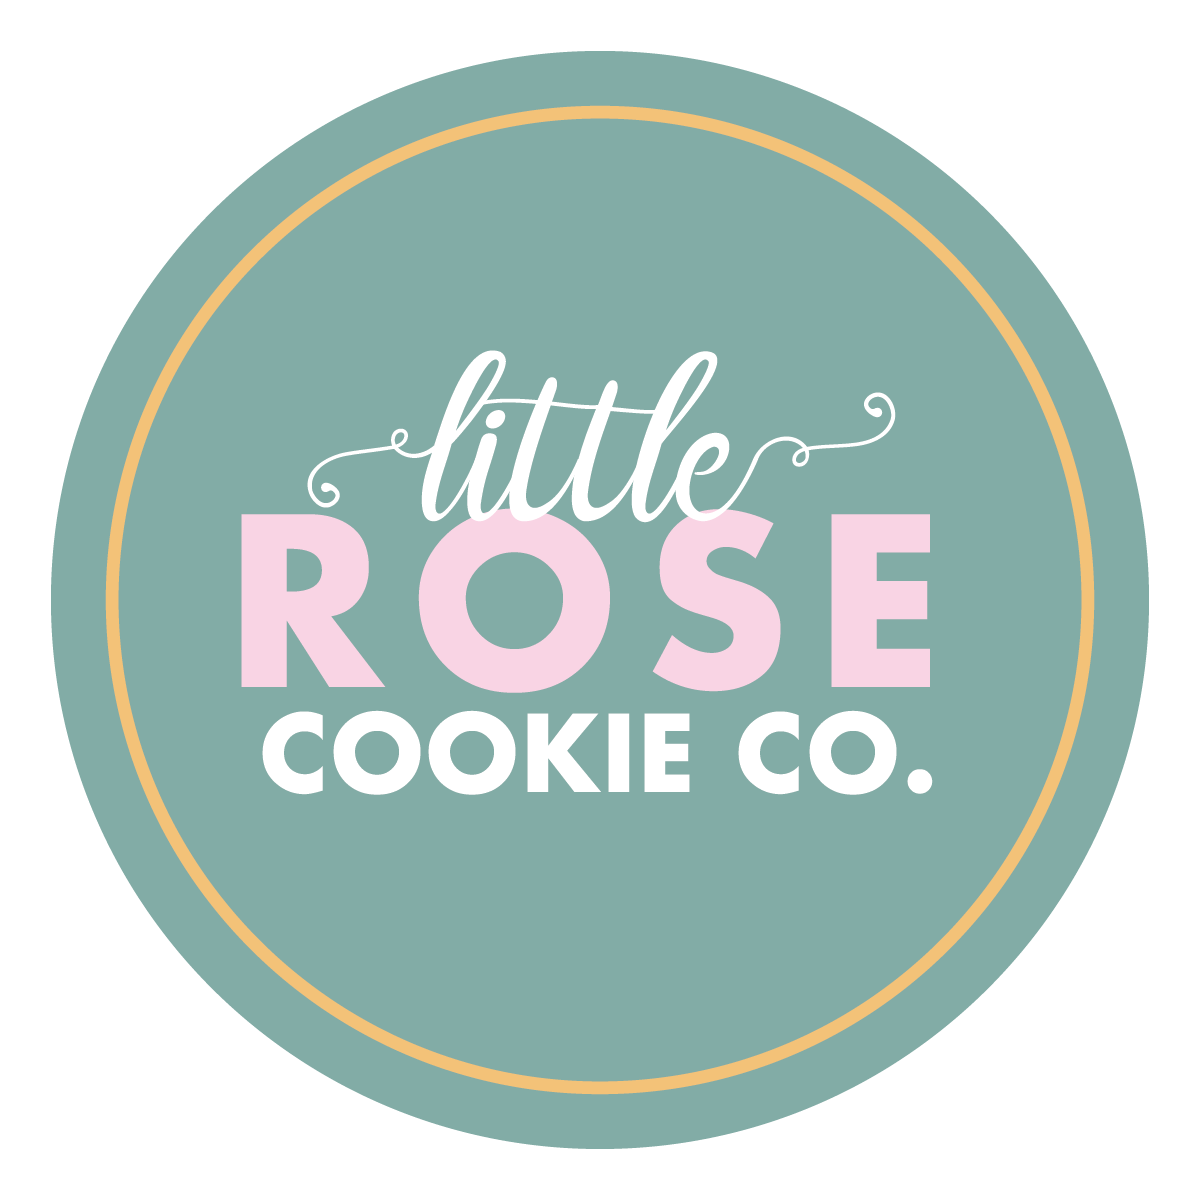 Rose cookie co little rose cookie co nvjuhfo Choice Image